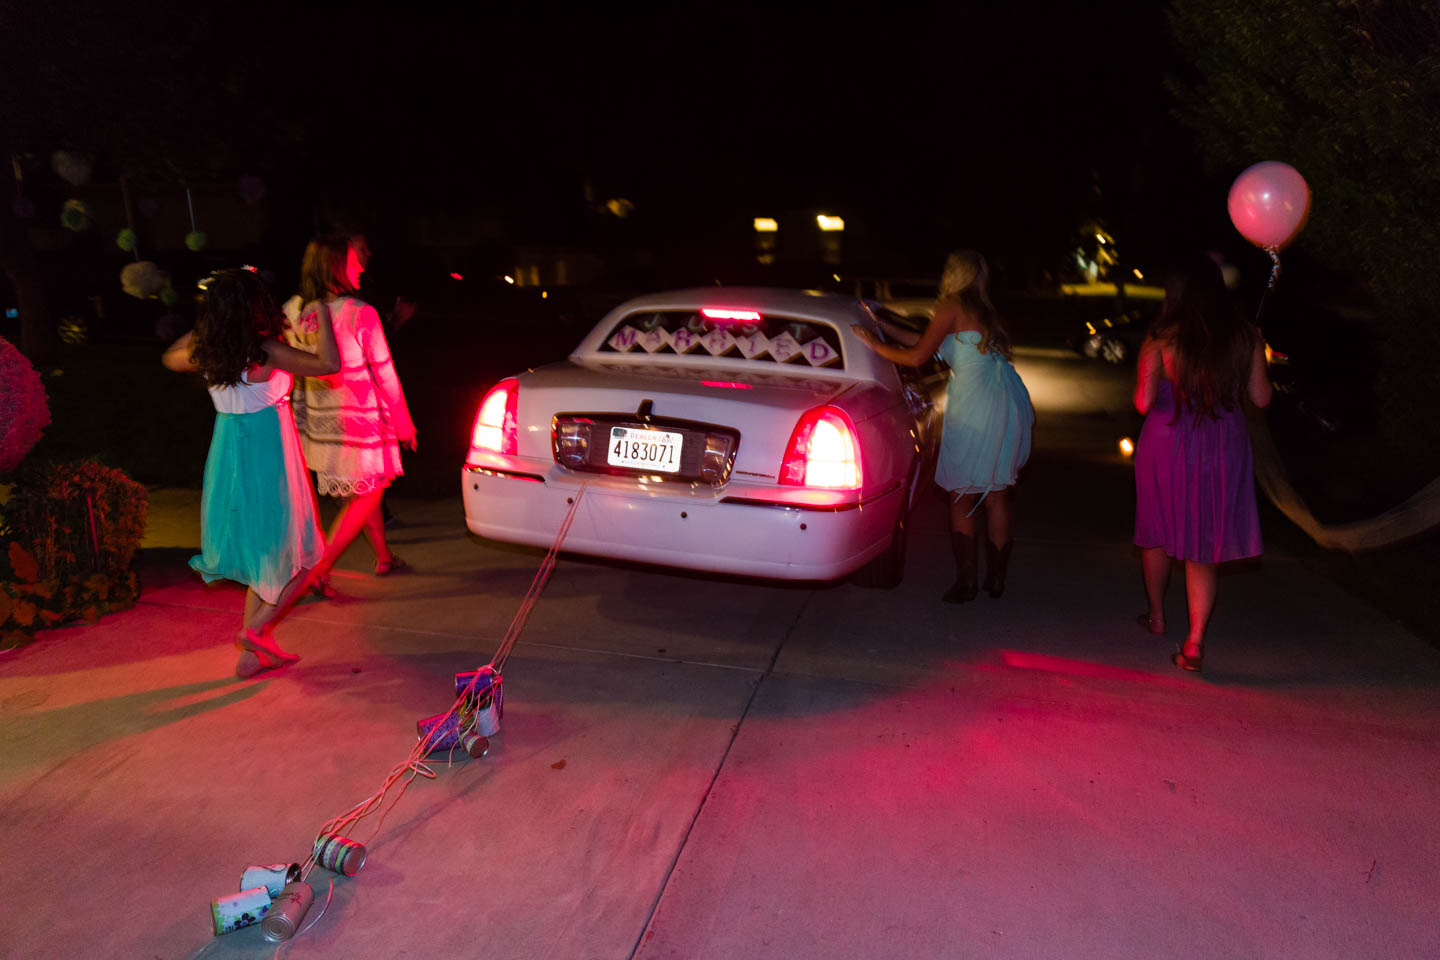 Wedding tradition of pulling tin cans behind the limo